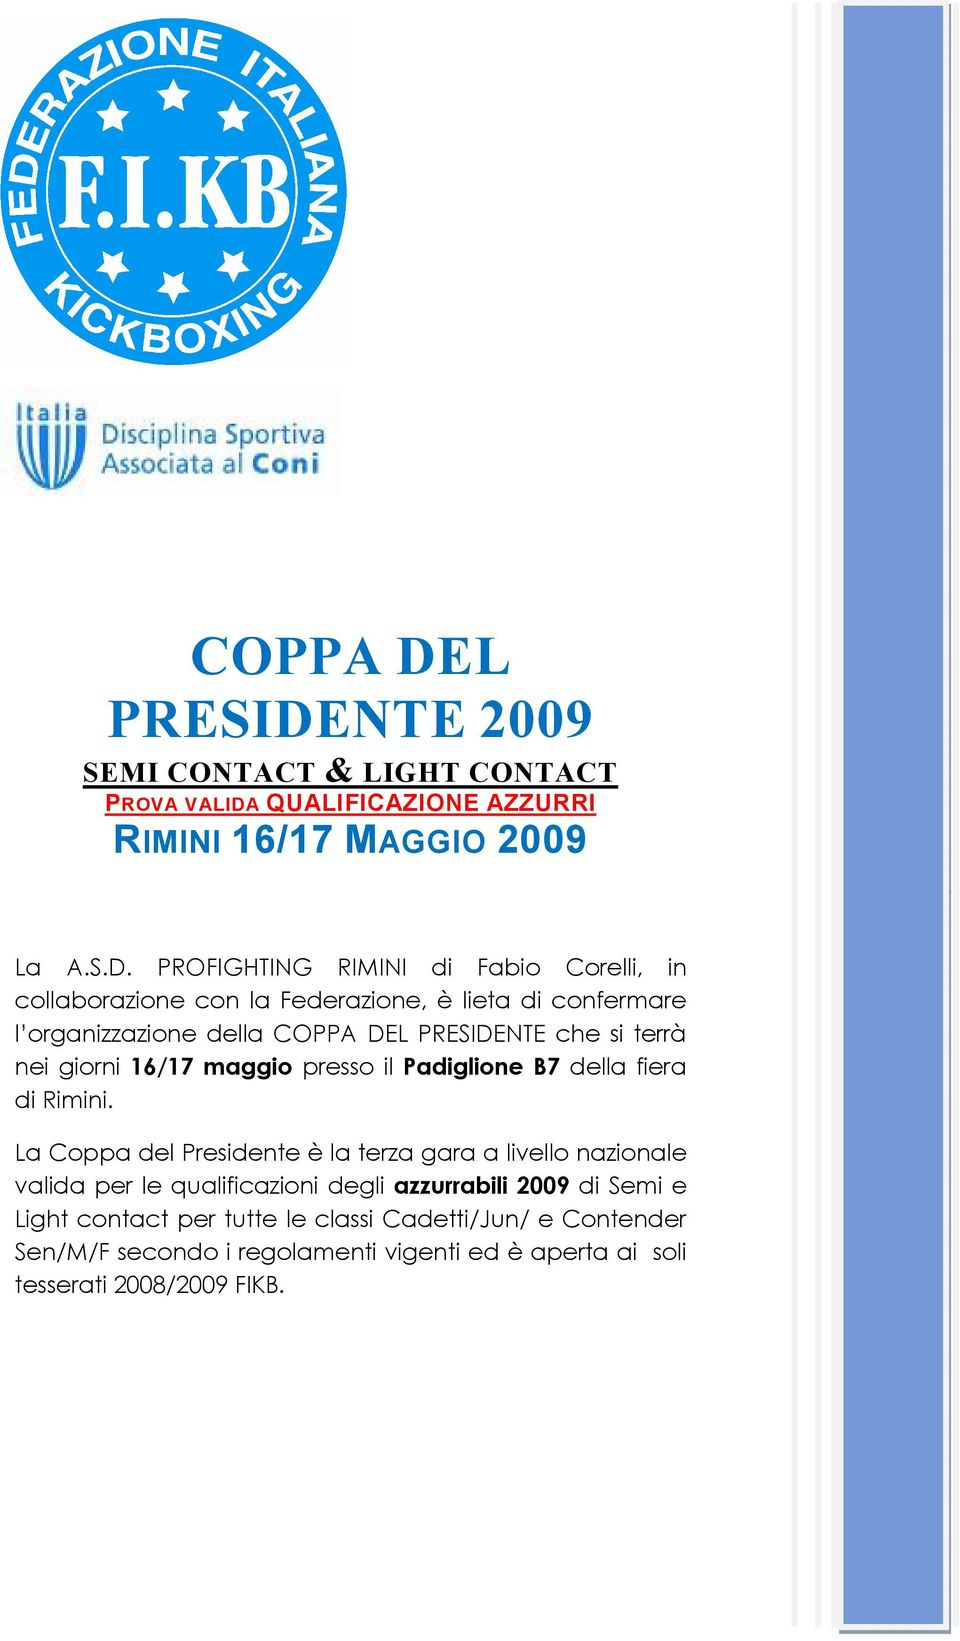 NTE 2009 SEMI CONTACT & LIGHT CONTACT PROVA VALIDA